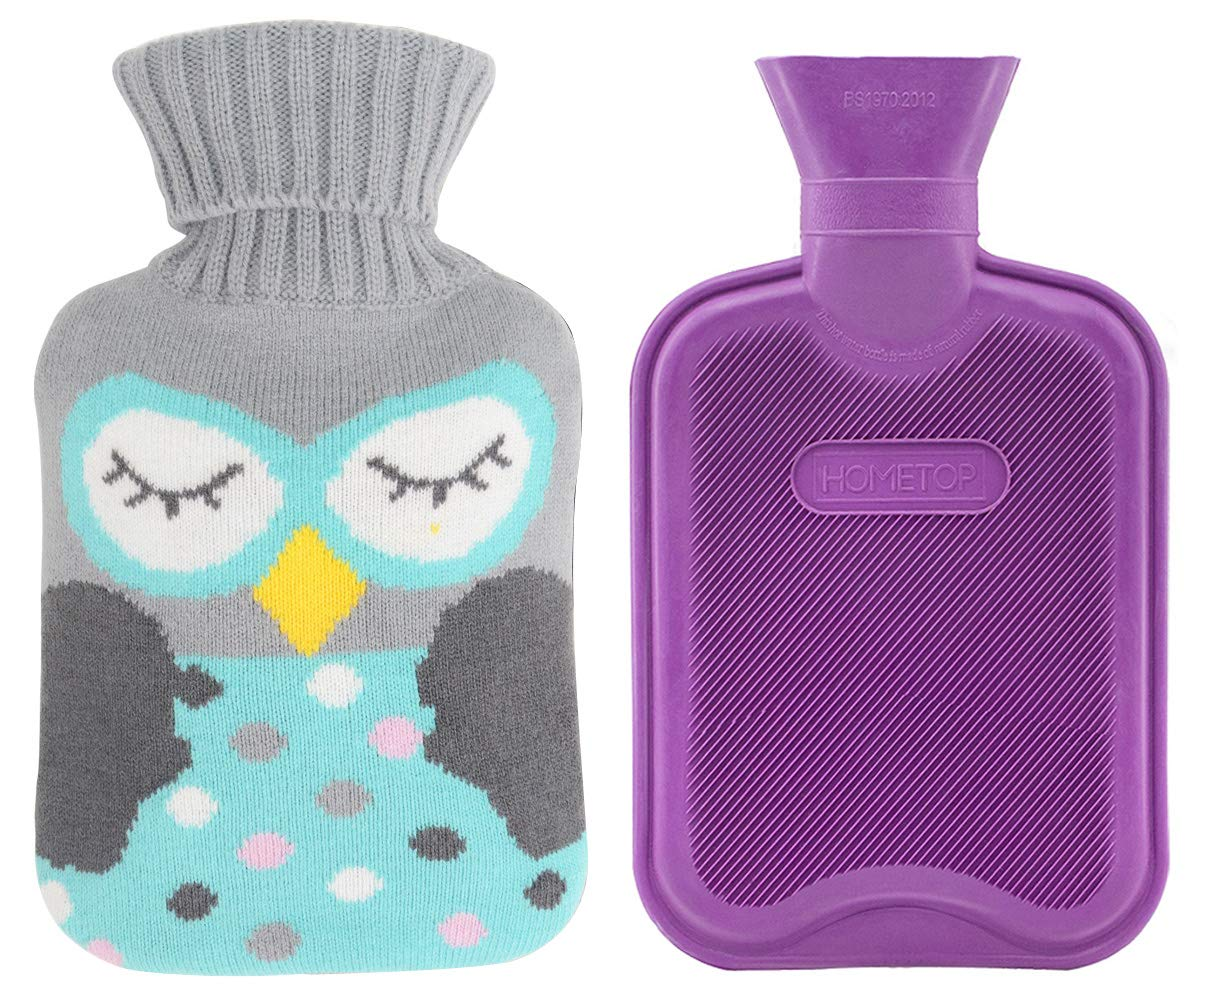 Premium Classic Rubber Hot Water Bottle and Cute Pattern Embroidery Knit Cover (1L, Purple/Gray with Green Owl)